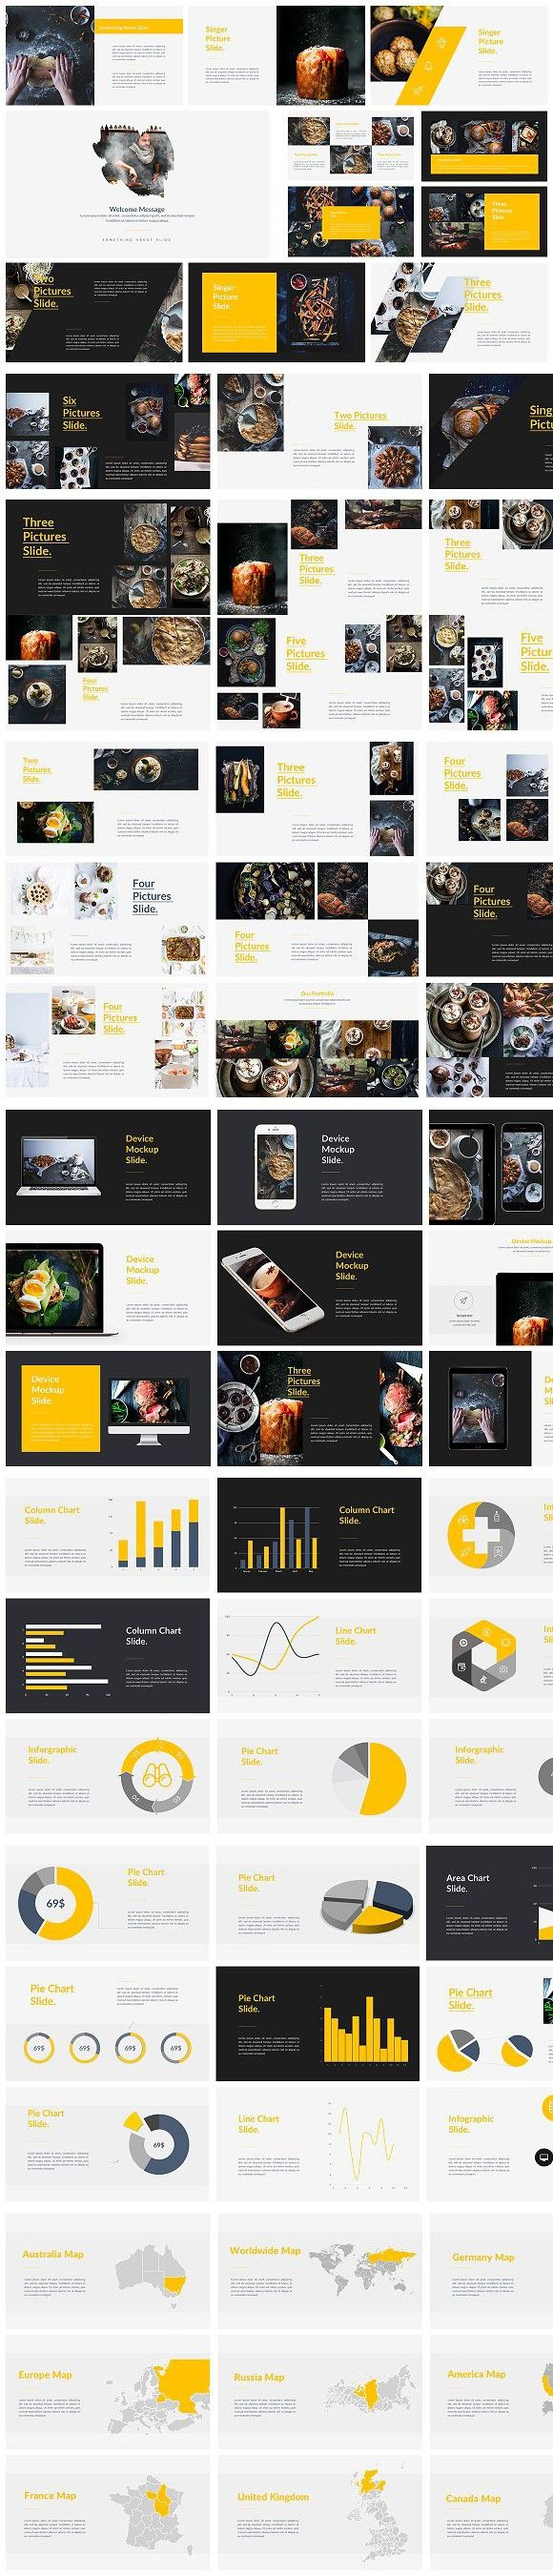 Food Powerpoint Template. Infographic Templates. $15.00